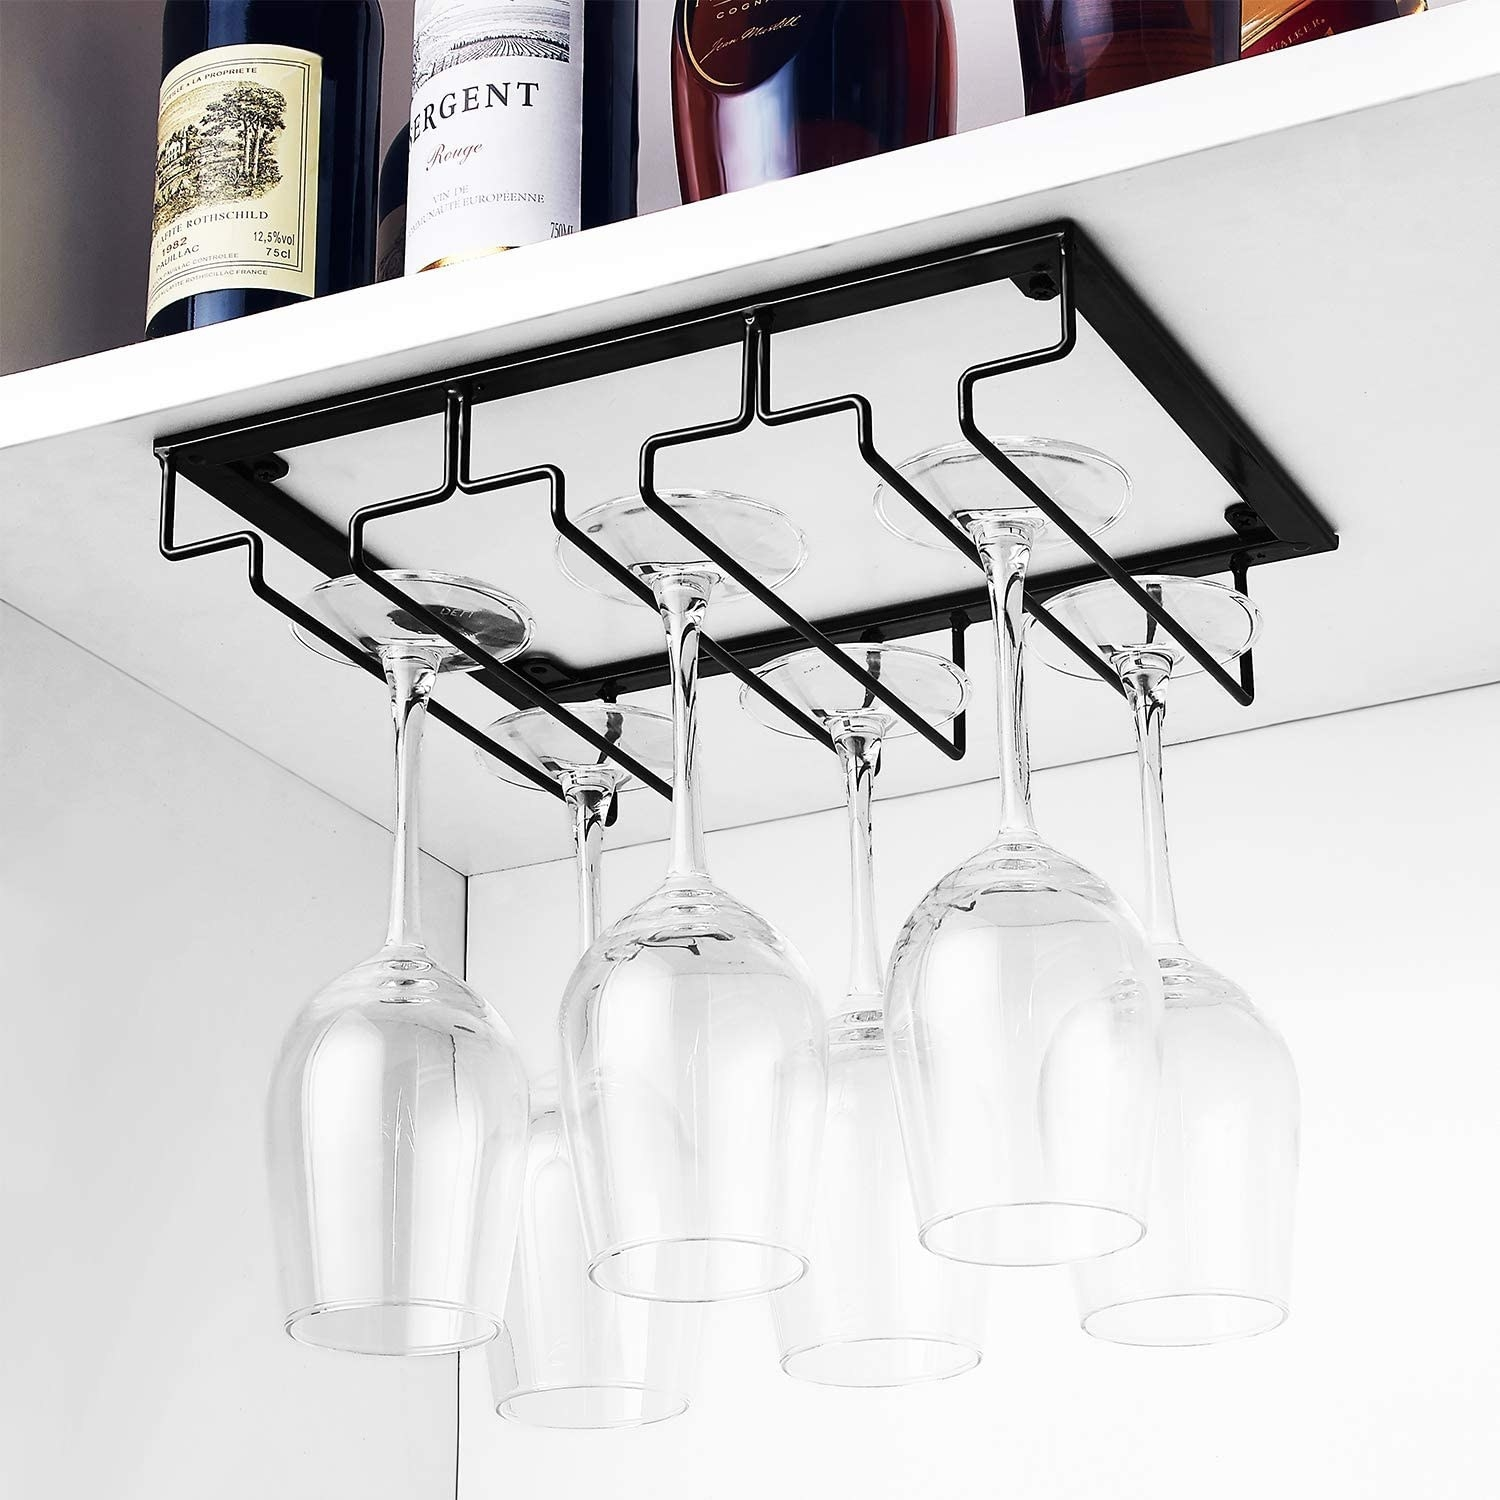 A metal wine glass holder installed under a cabinet with several wine glasses hanging from it upside down